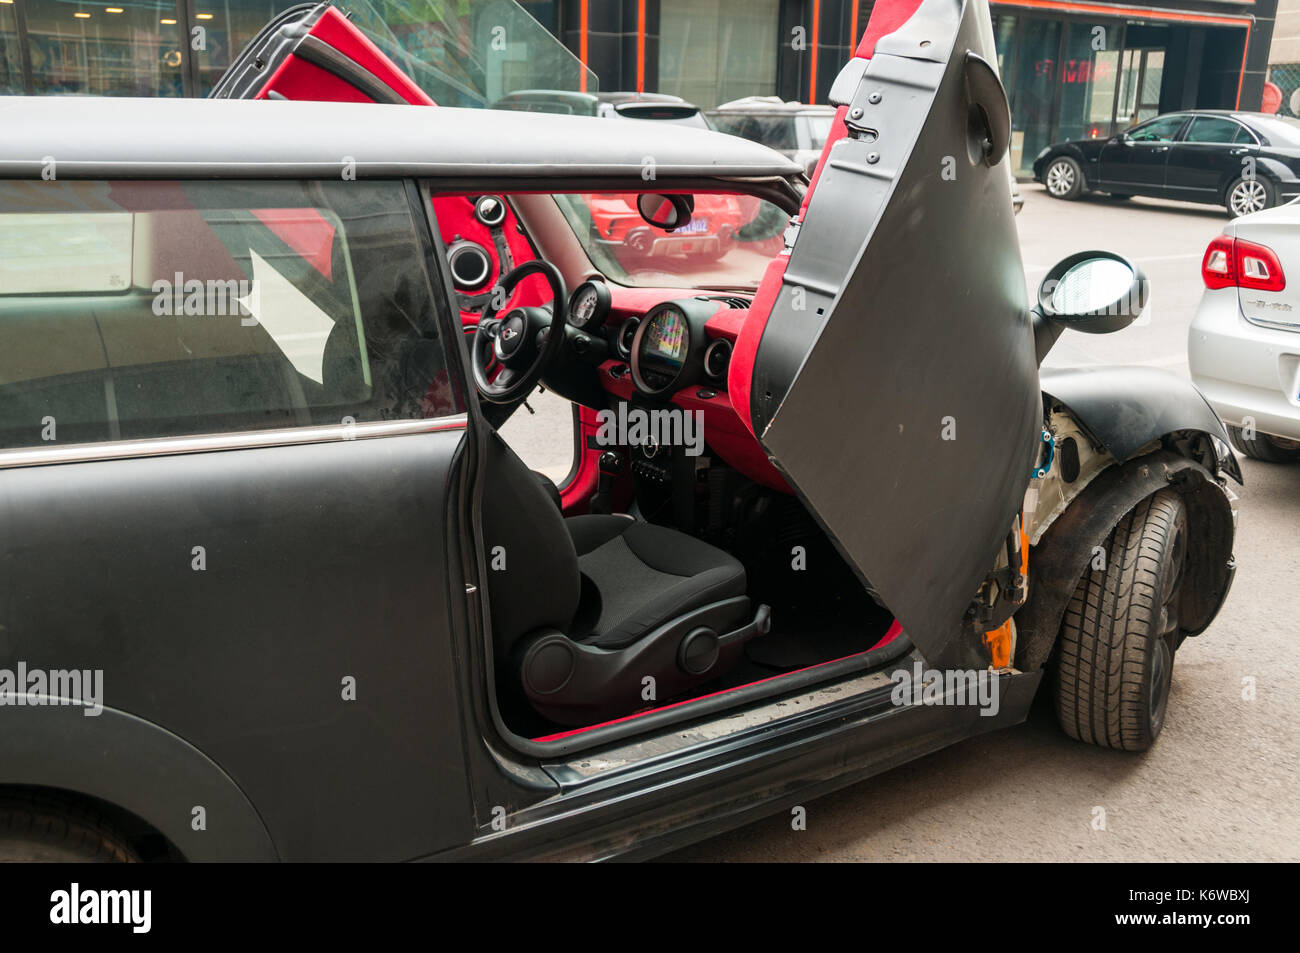 A modified Mini fitted with LSD hinges to give it scissor doors work done by Crazy Garage on the Beijing Tuning Street. & A modified Mini fitted with LSD hinges to give it scissor doors ...